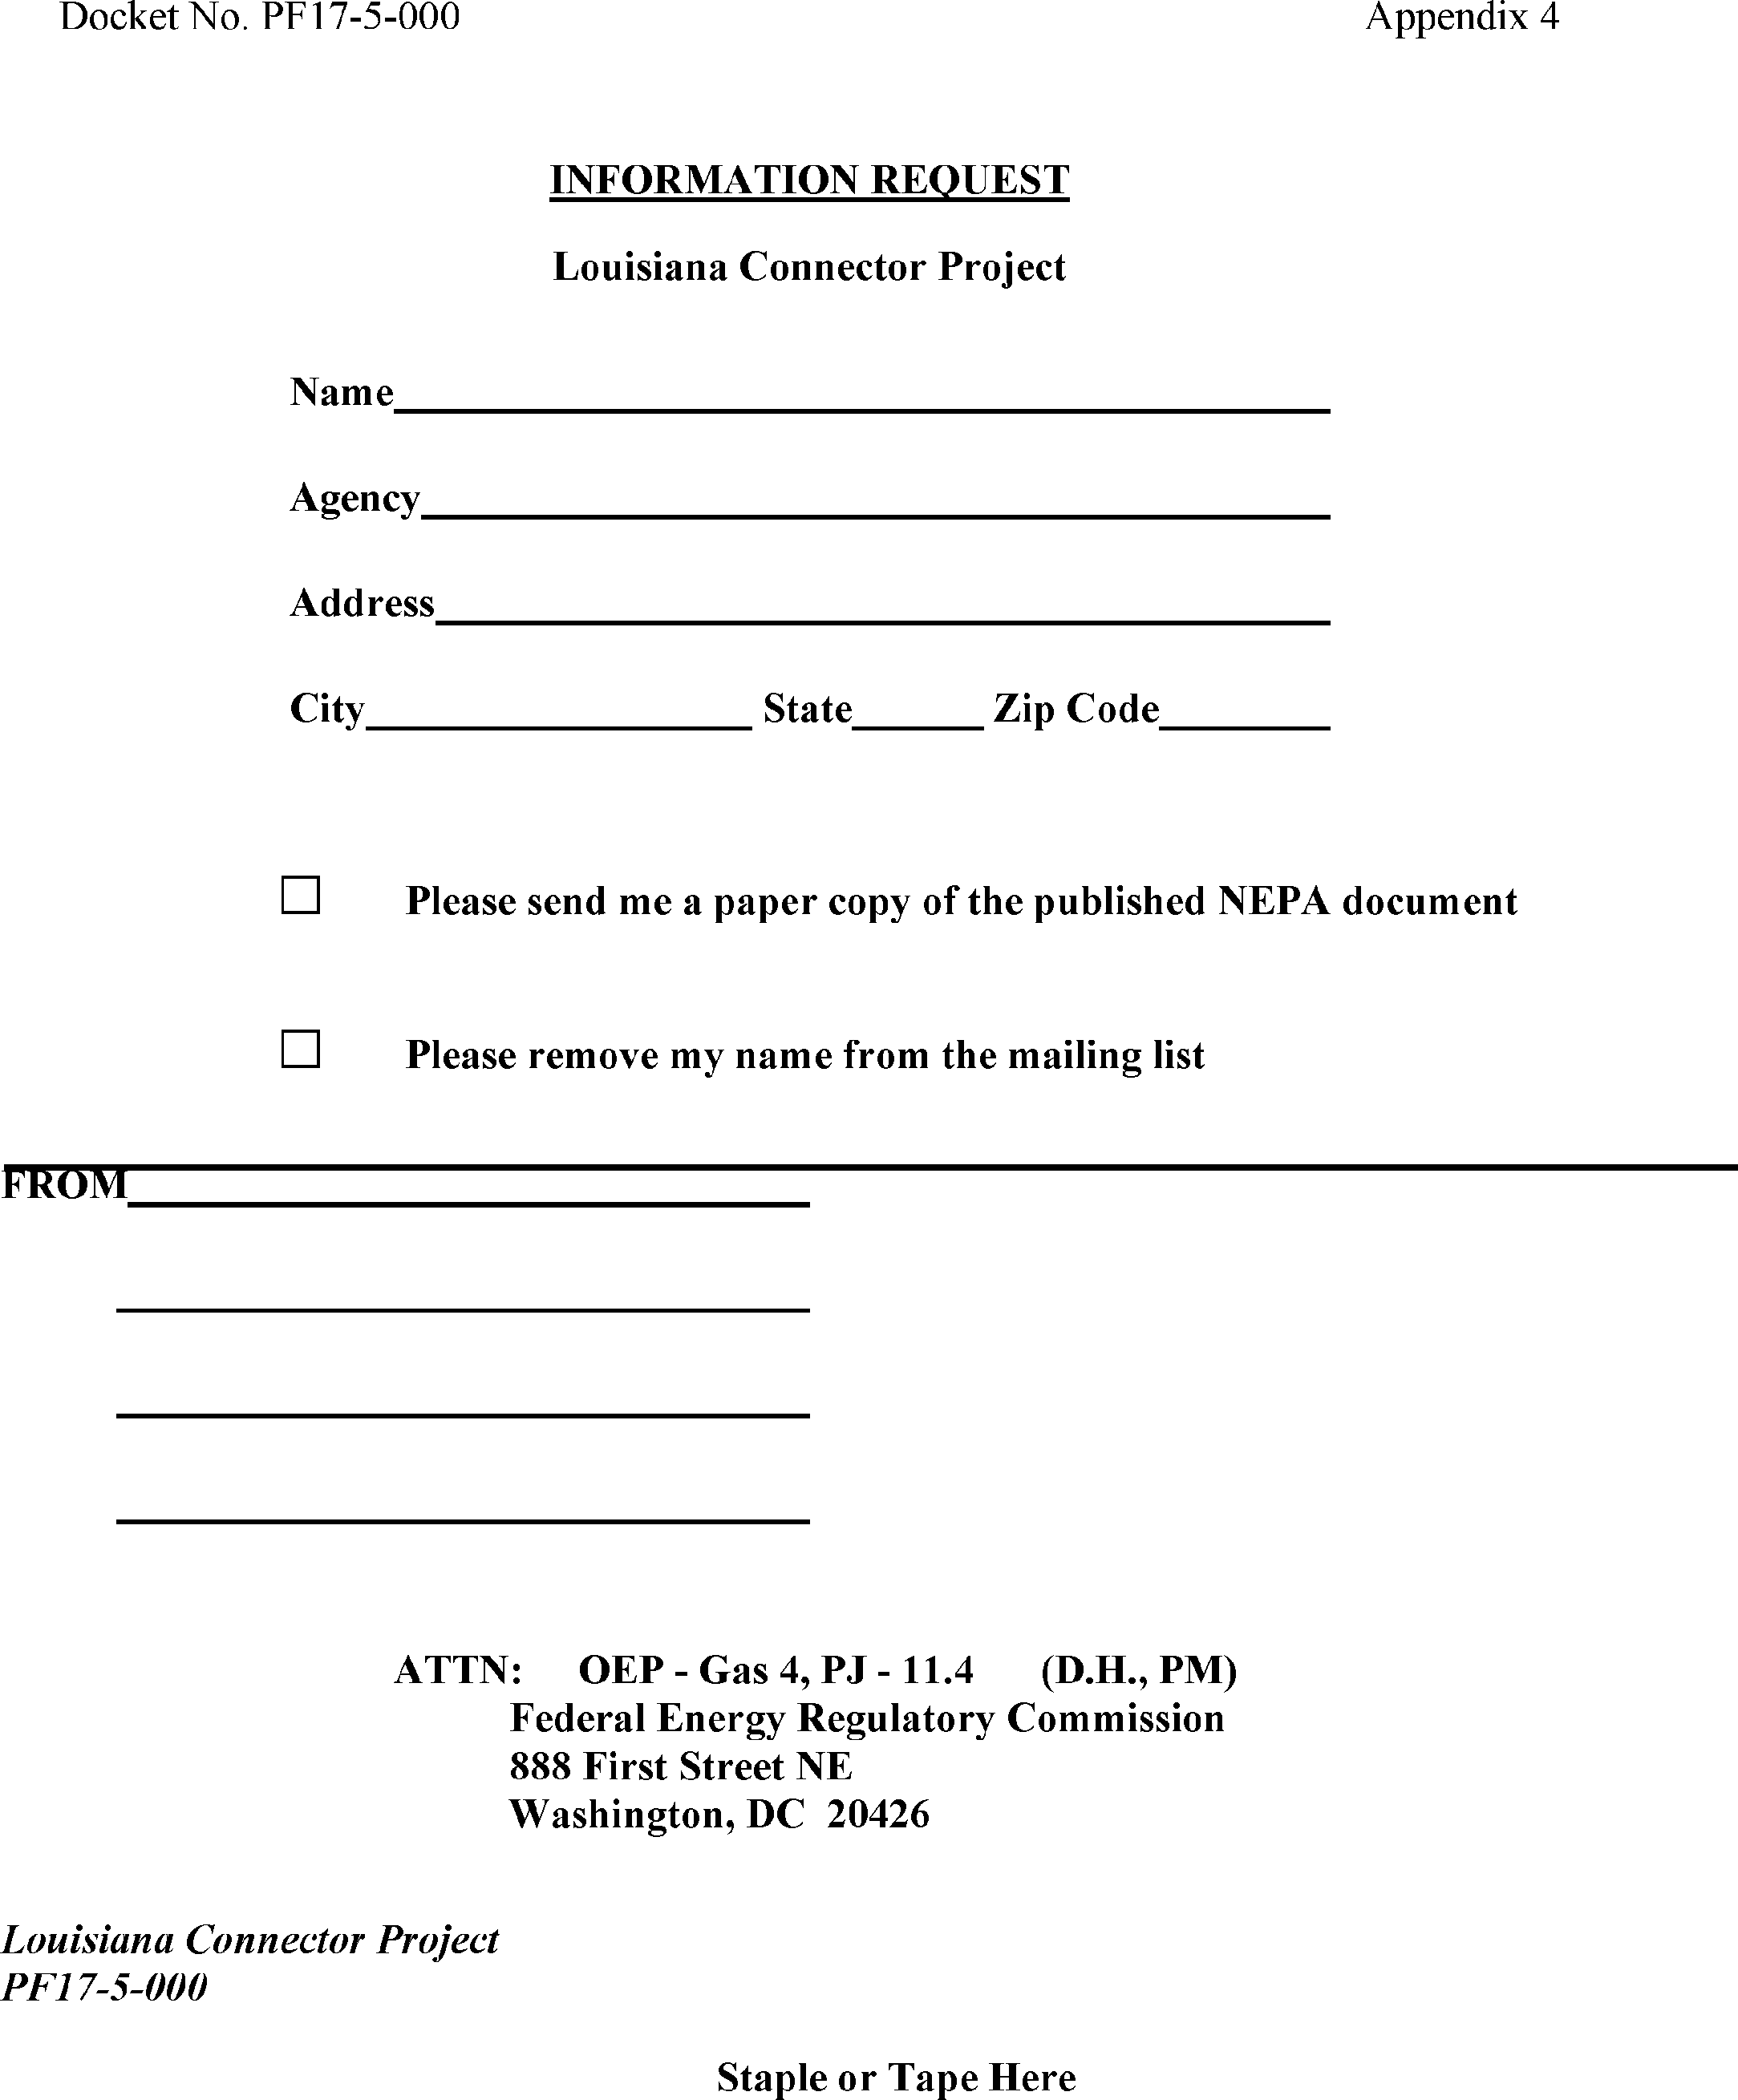 Federal Register :: Port Arthur Pipeline, LLC; Notice of Intent To on equipment order form, corporate order form, retail order form, commodities order form, trade order form, entertainment order form, coffee order form, furniture order form, event order form, payment order form, invoice order form, manufacturing order form, customer order form, production order form, product order form, asset order form, produce order form, mediation order form, money order form, engineering order form,